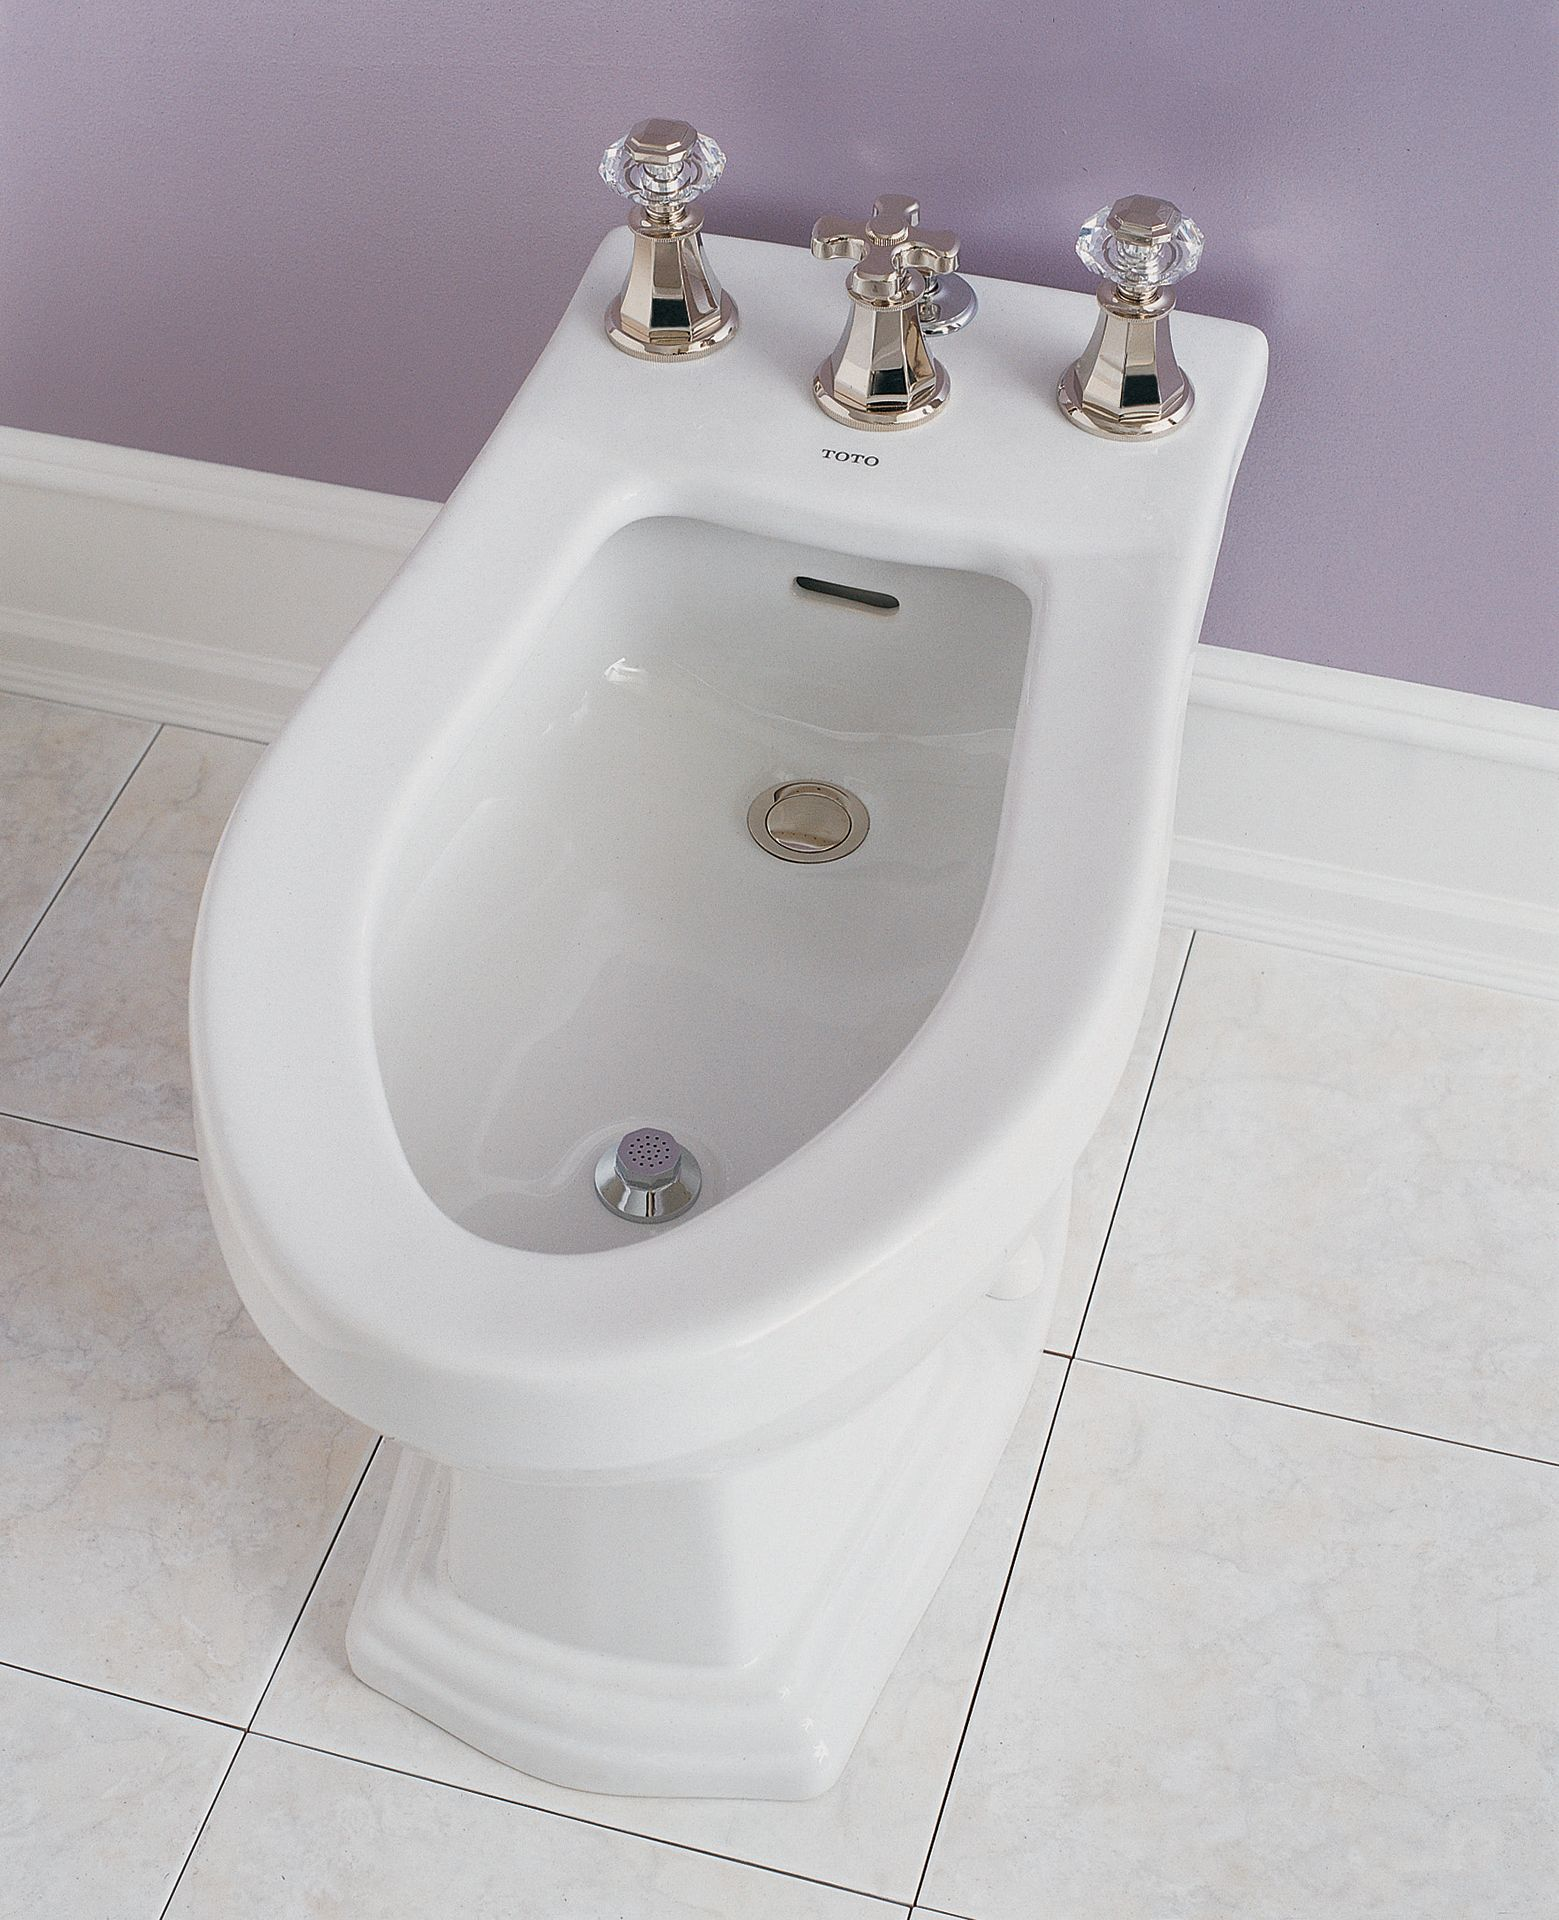 Clayton bidet vertical spray - What is a bidet used for ...